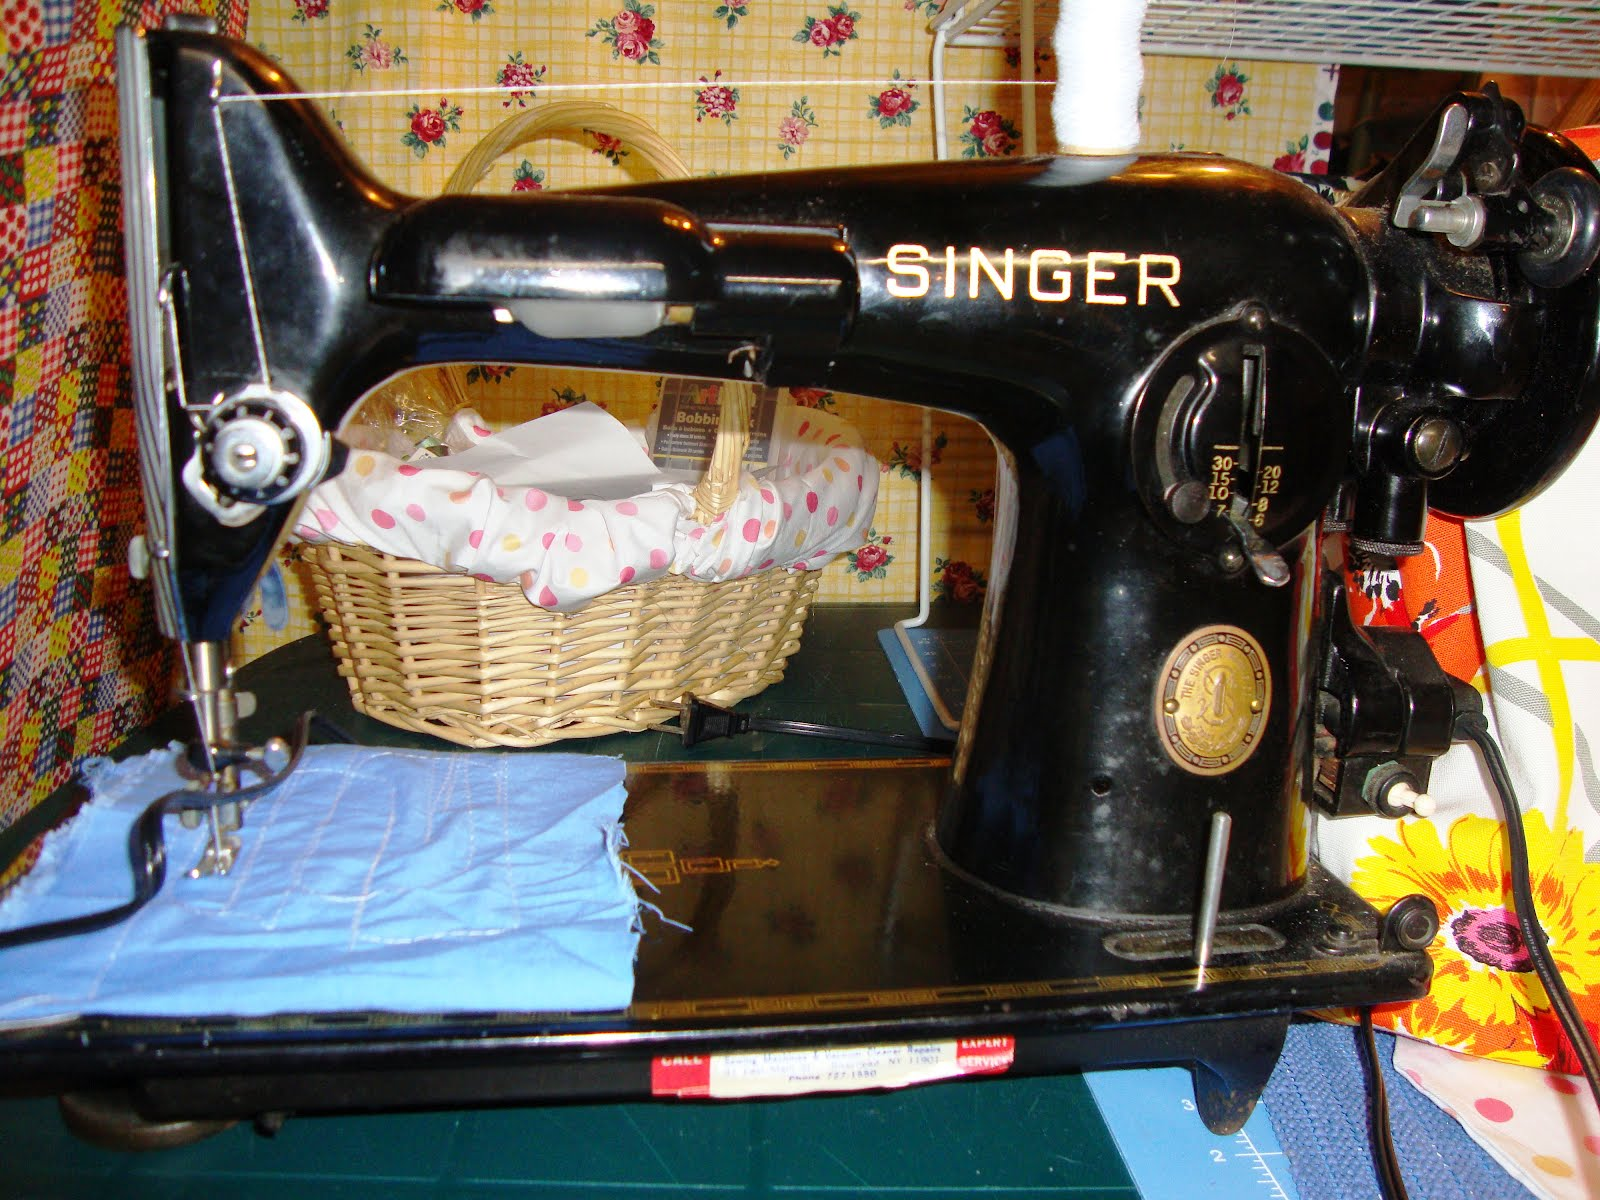 Modern day laura my sewing machine collection my sewing machine collection fandeluxe Gallery